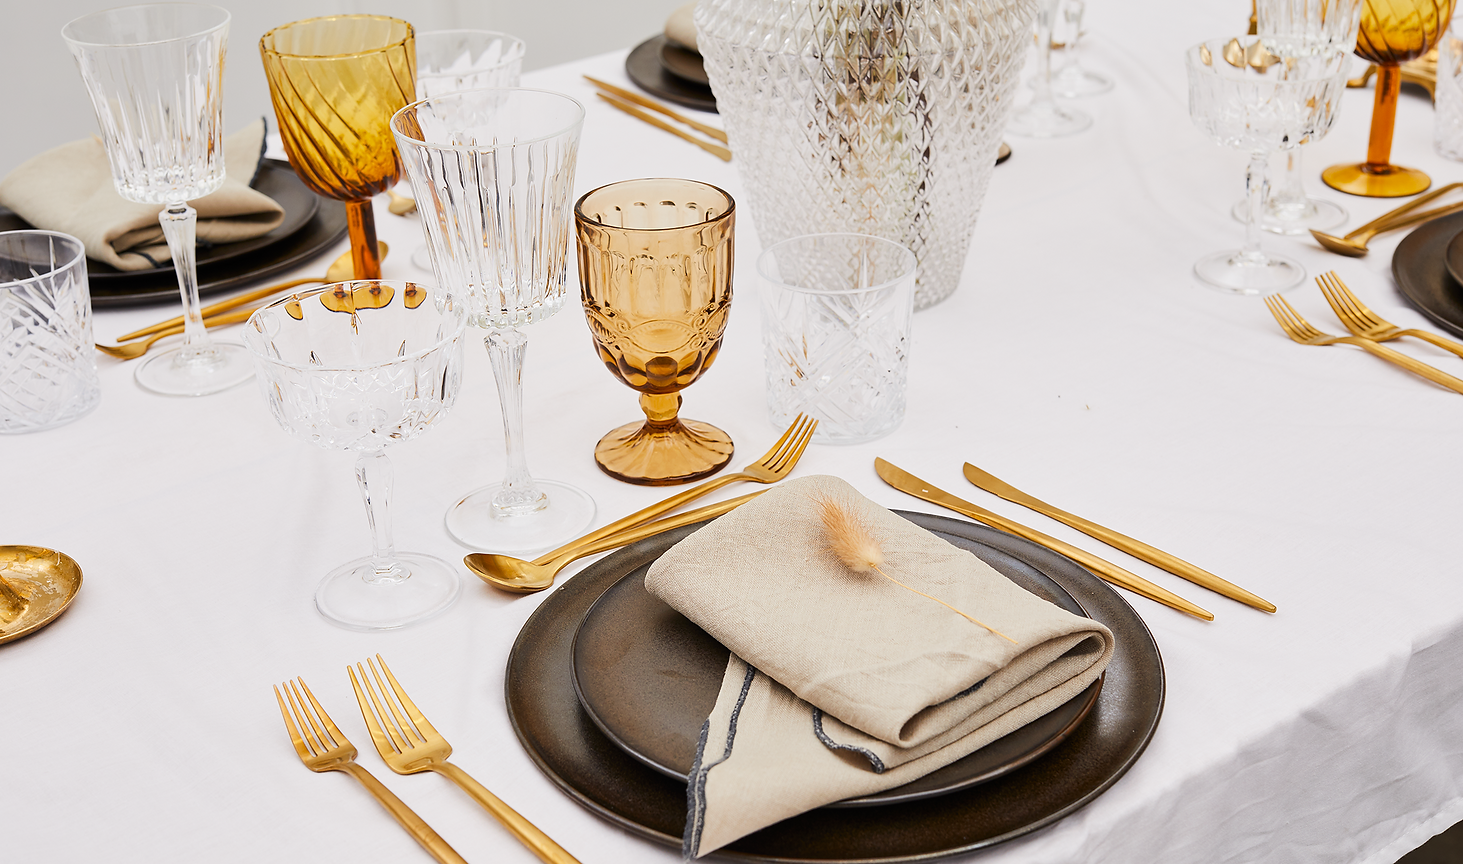 Lej metallic brown raw stel hos Tablesetting serviceudlejning